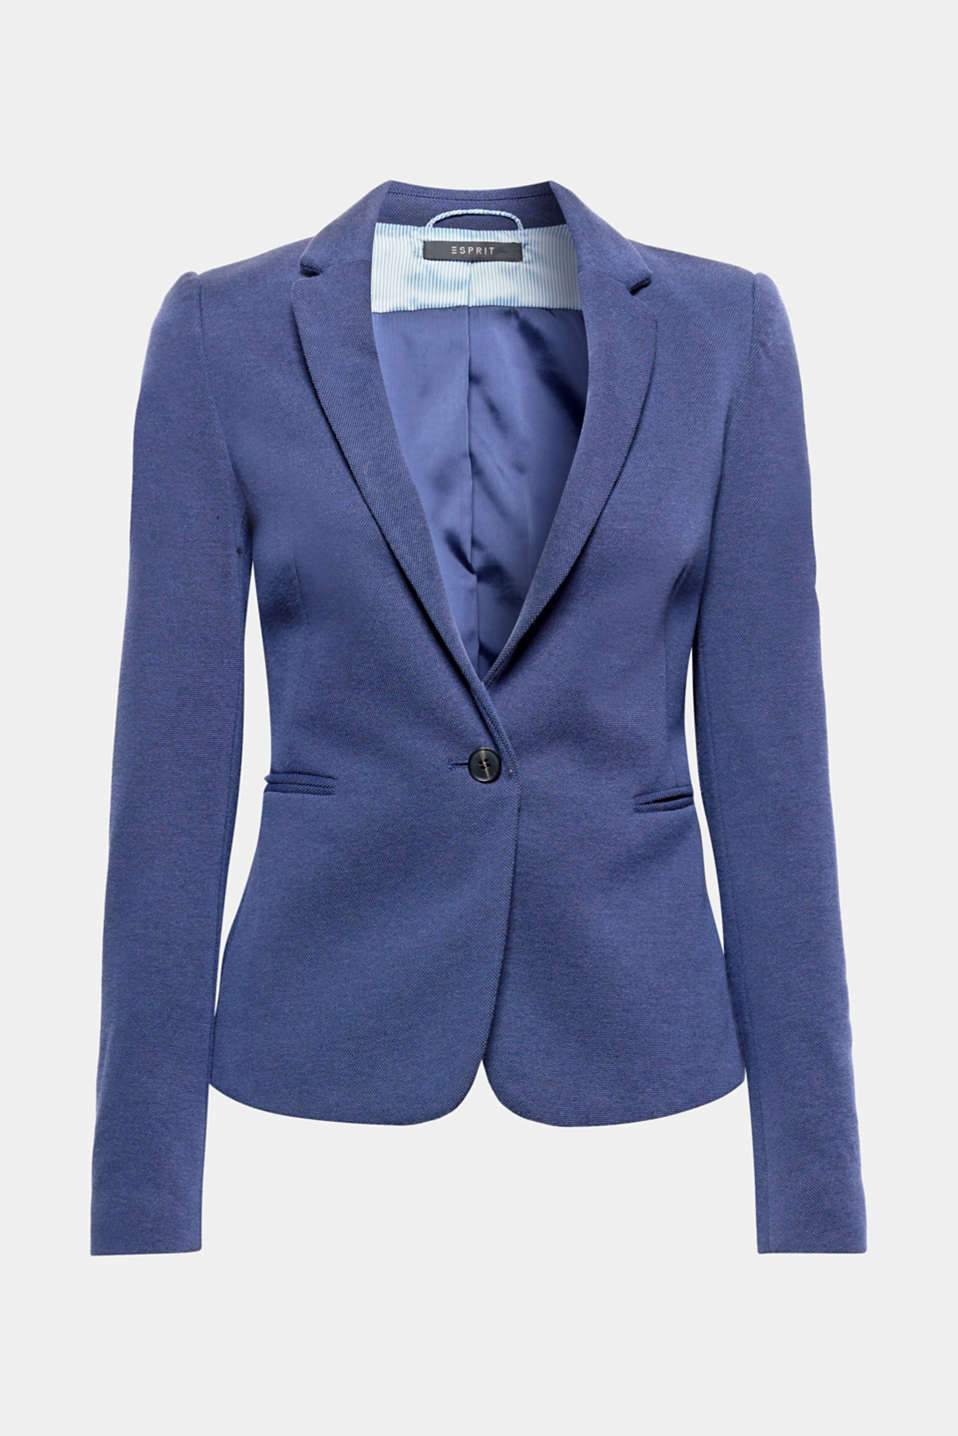 Esprit stretch piqué jersey blazer at our Online Shop